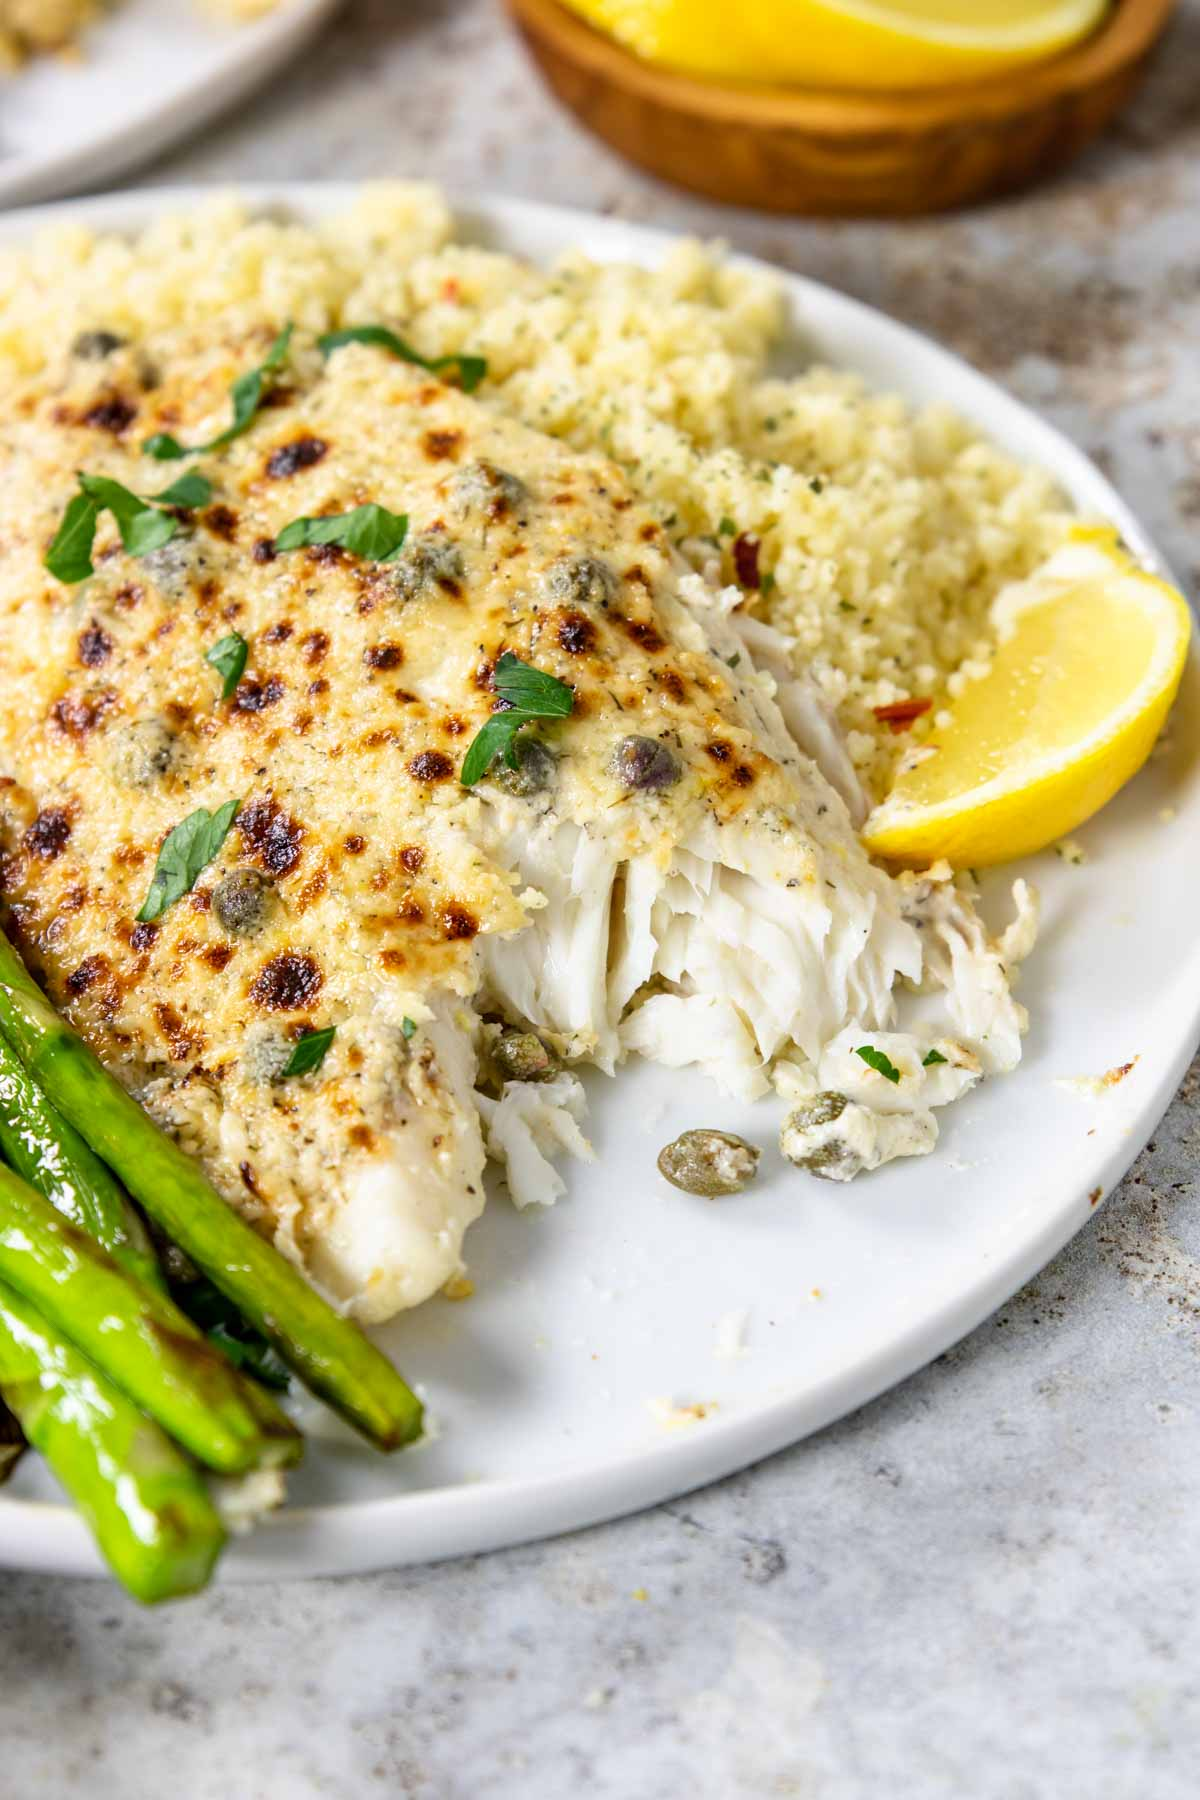 flaky tilapia with a parmesan topping and a lemon wedge